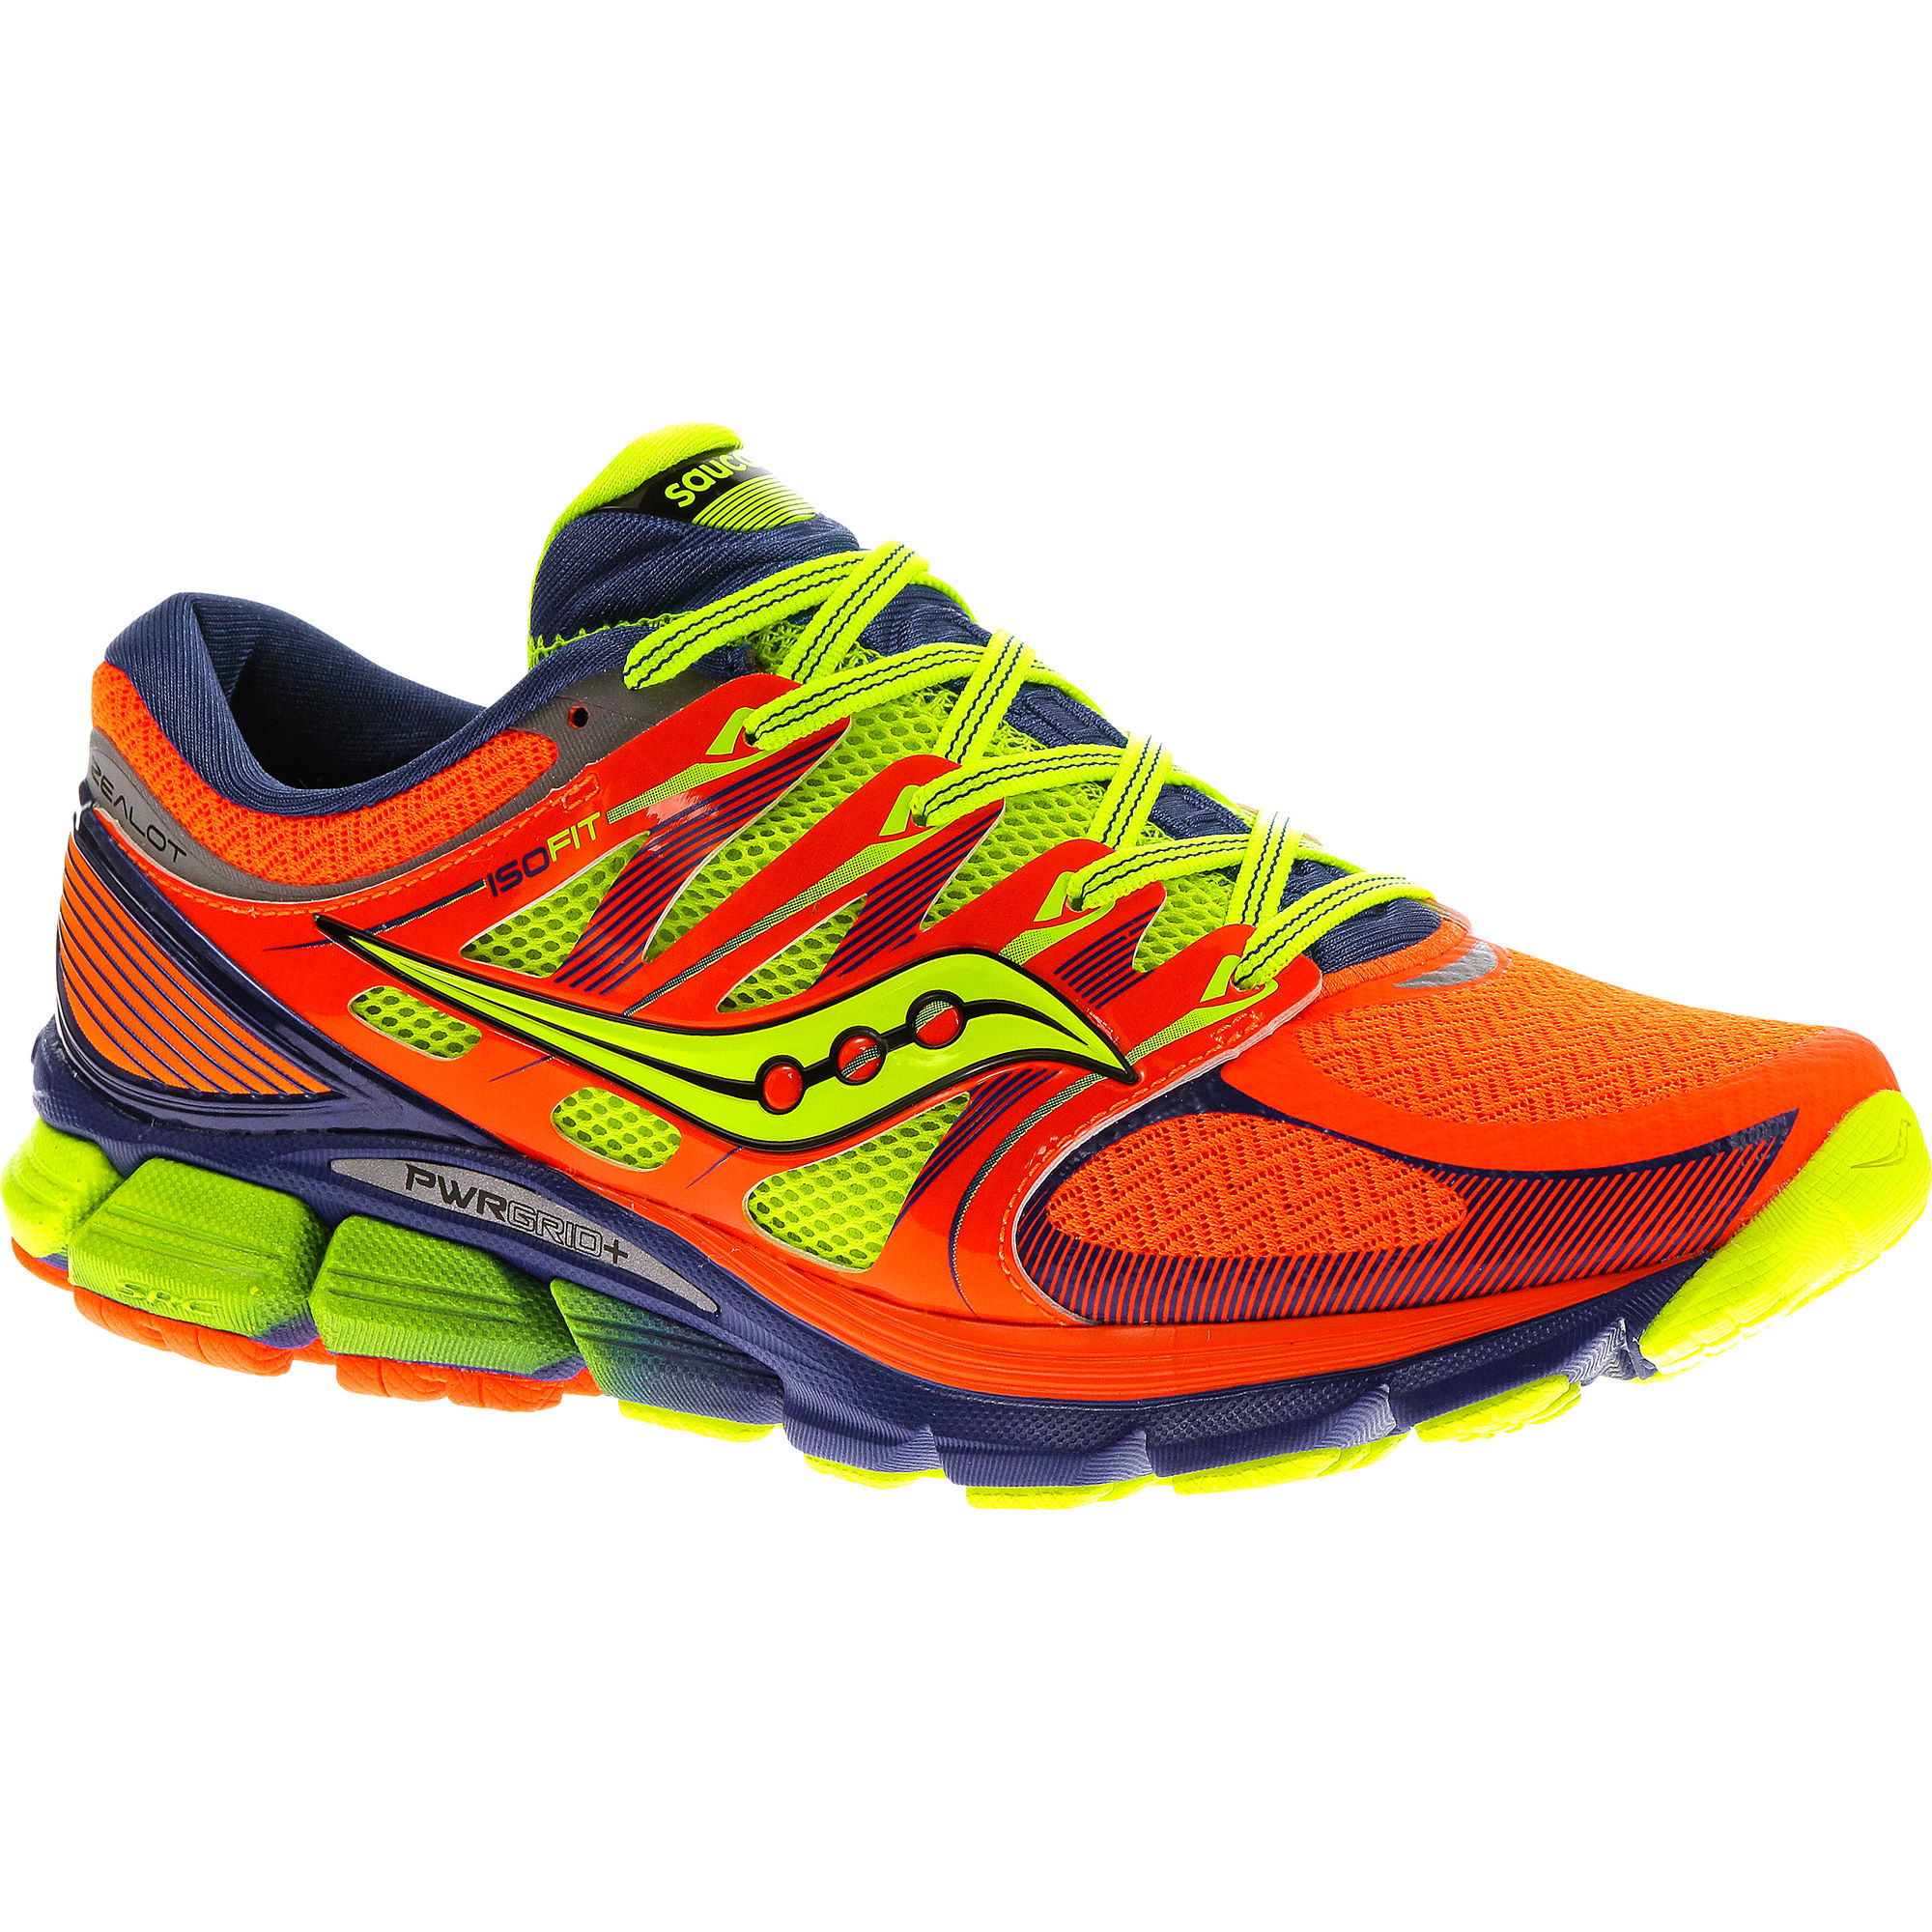 Cushion Running Shoes Reviews